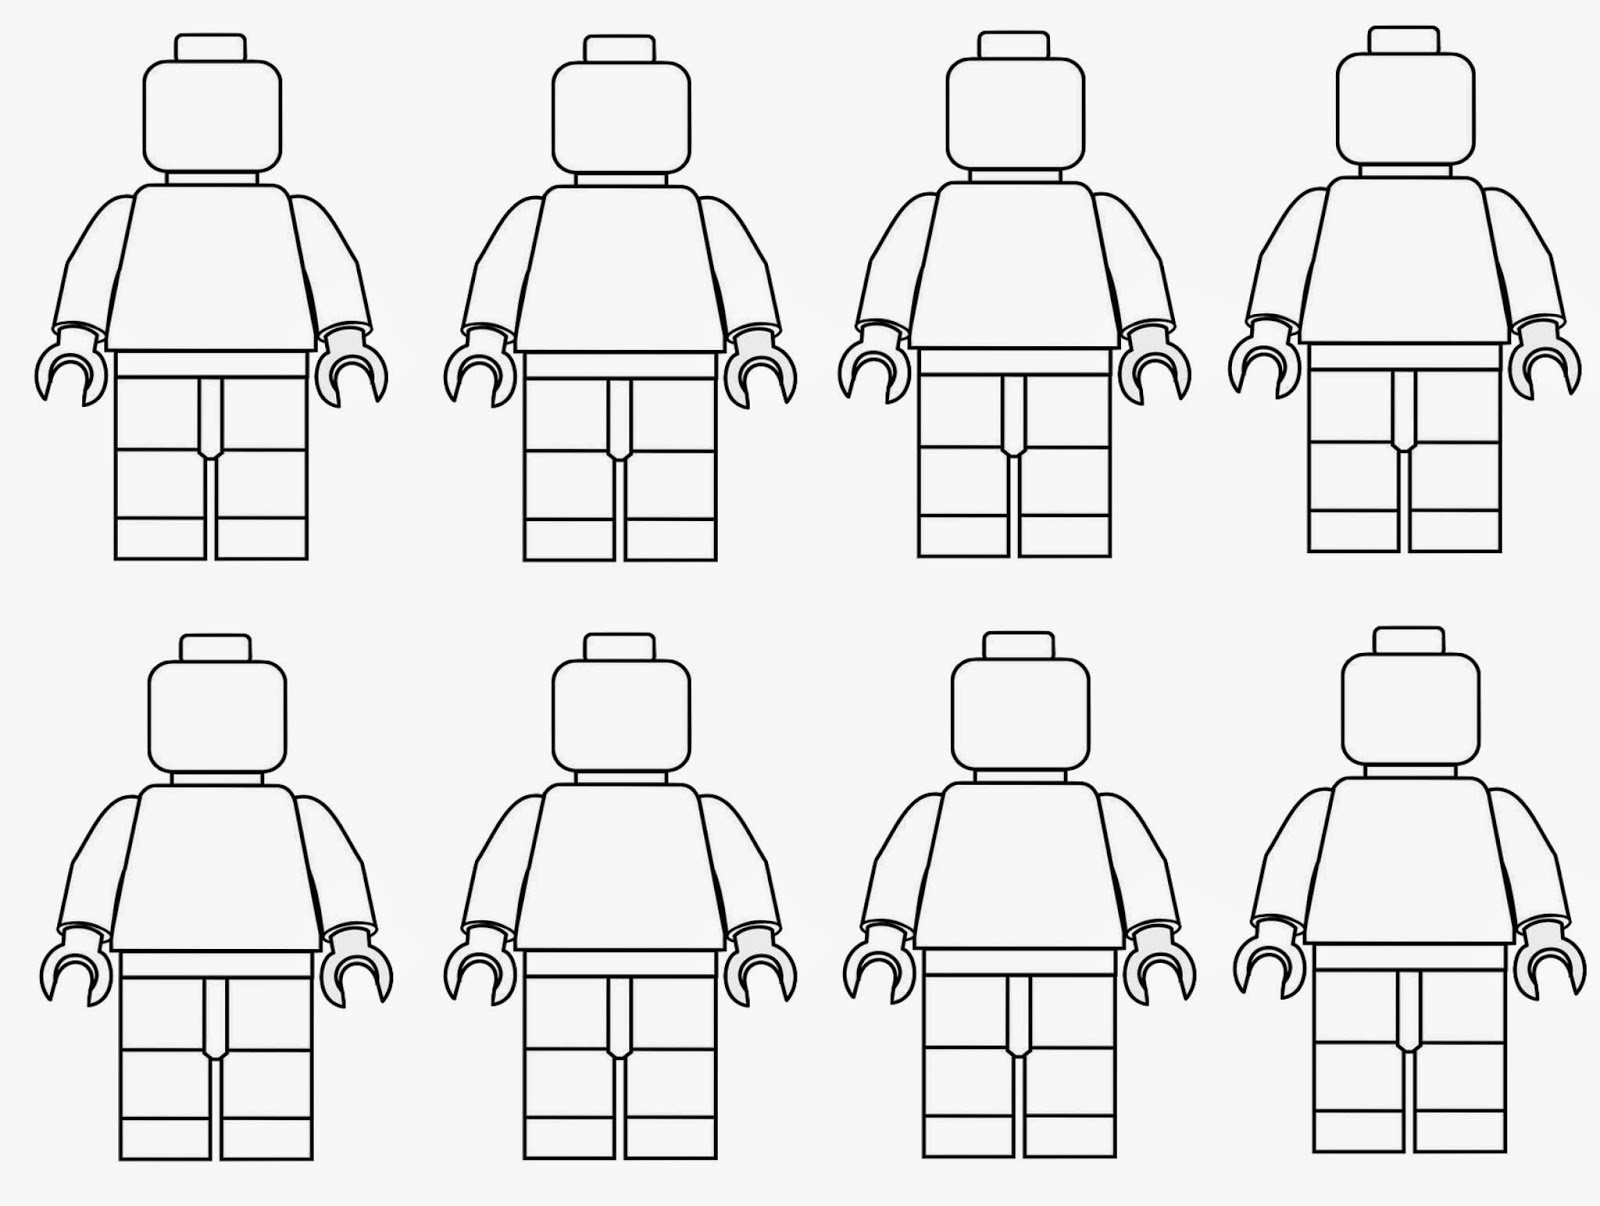 Spring time treats lego men coloring page for Lego figure coloring page